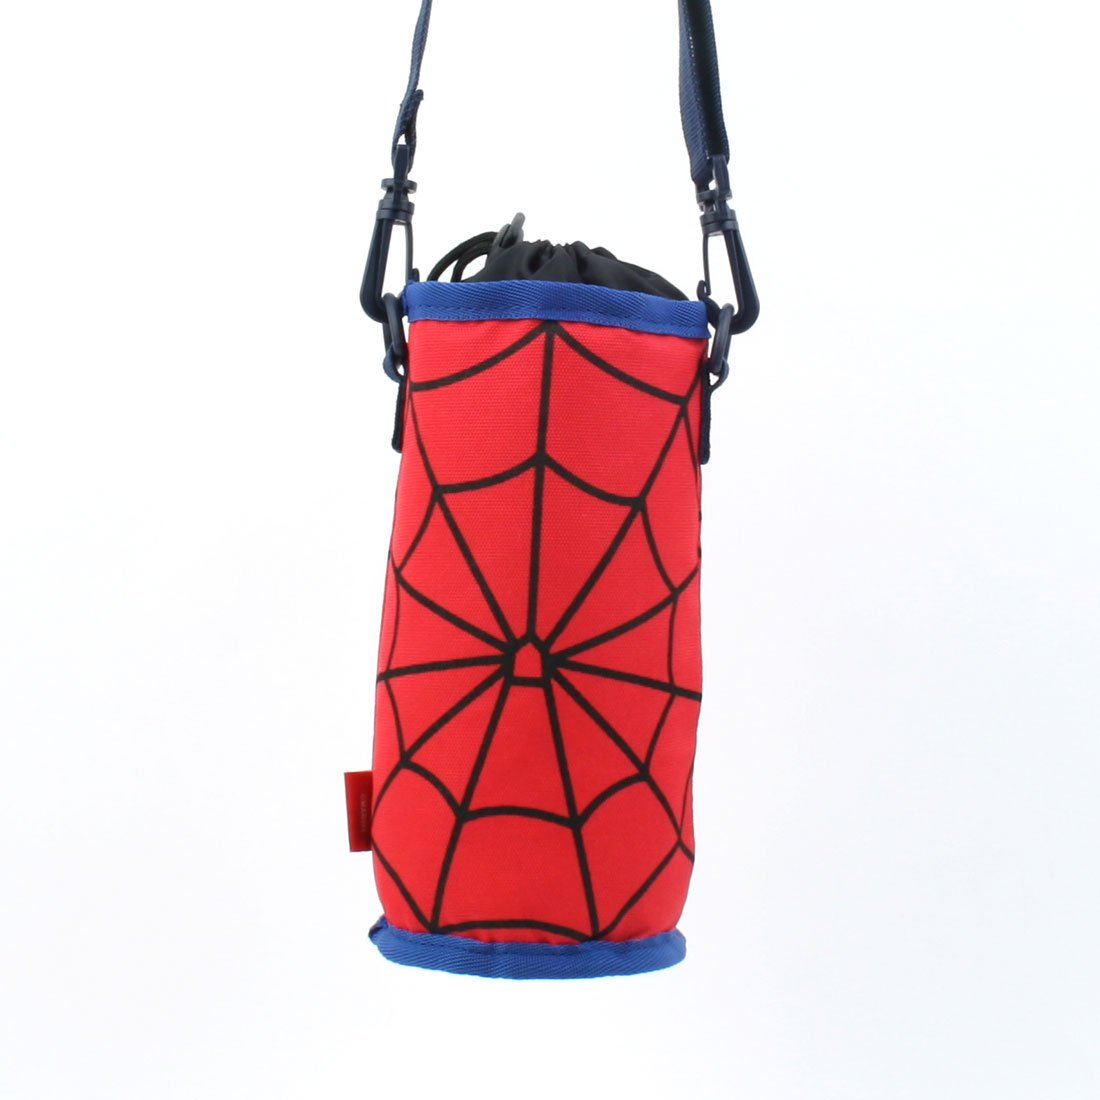 WINGHOUSE x Marvel Spider-Man Water Bottle Sleeve Bottle holder Cross body Bag with Shoulder Strap for Pre-Teen by WINGHOUSE (Image #3)